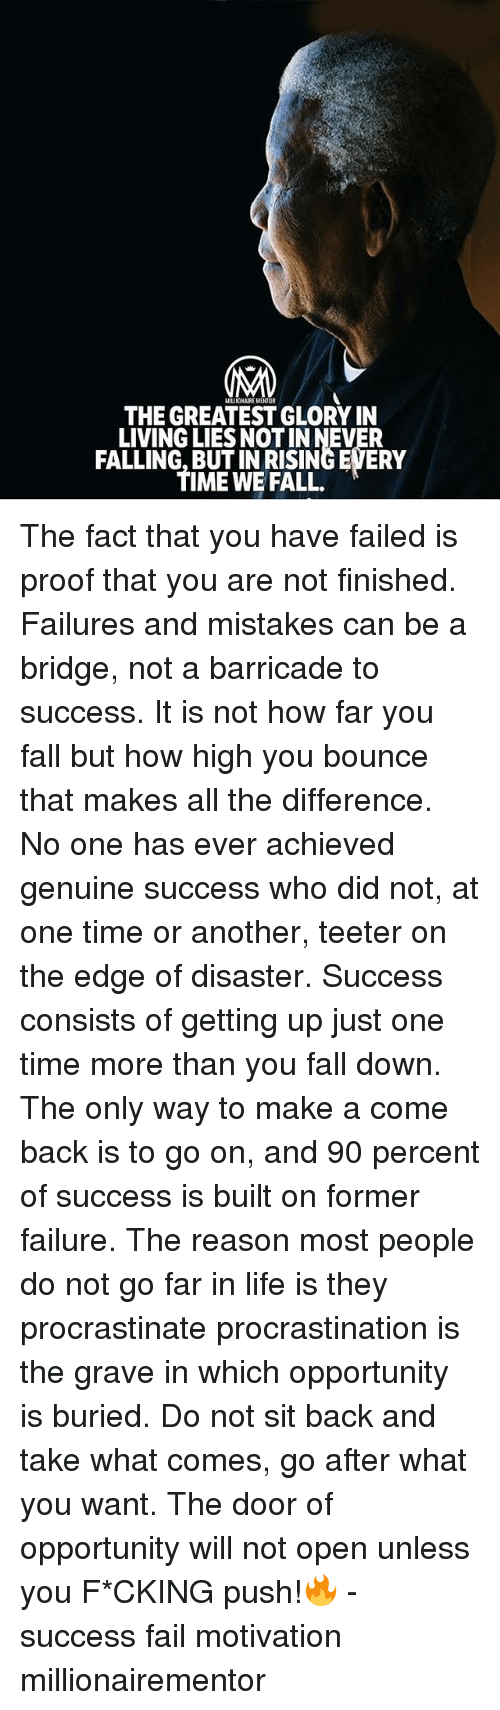 Fail, Fall, and How High: MILLIONAIRE MENTOR  THE GREATEST GLORY IN  LIVING LIES NOT IN NEVER  FALLING, BUT IN RISING EVERY  TIME WE FALL. The fact that you have failed is proof that you are not finished. Failures and mistakes can be a bridge, not a barricade to success. It is not how far you fall but how high you bounce that makes all the difference. No one has ever achieved genuine success who did not, at one time or another, teeter on the edge of disaster. Success consists of getting up just one time more than you fall down. The only way to make a come back is to go on, and 90 percent of success is built on former failure. The reason most people do not go far in life is they procrastinate procrastination is the grave in which opportunity is buried. Do not sit back and take what comes, go after what you want. The door of opportunity will not open unless you F*CKING push!🔥 - success fail motivation millionairementor